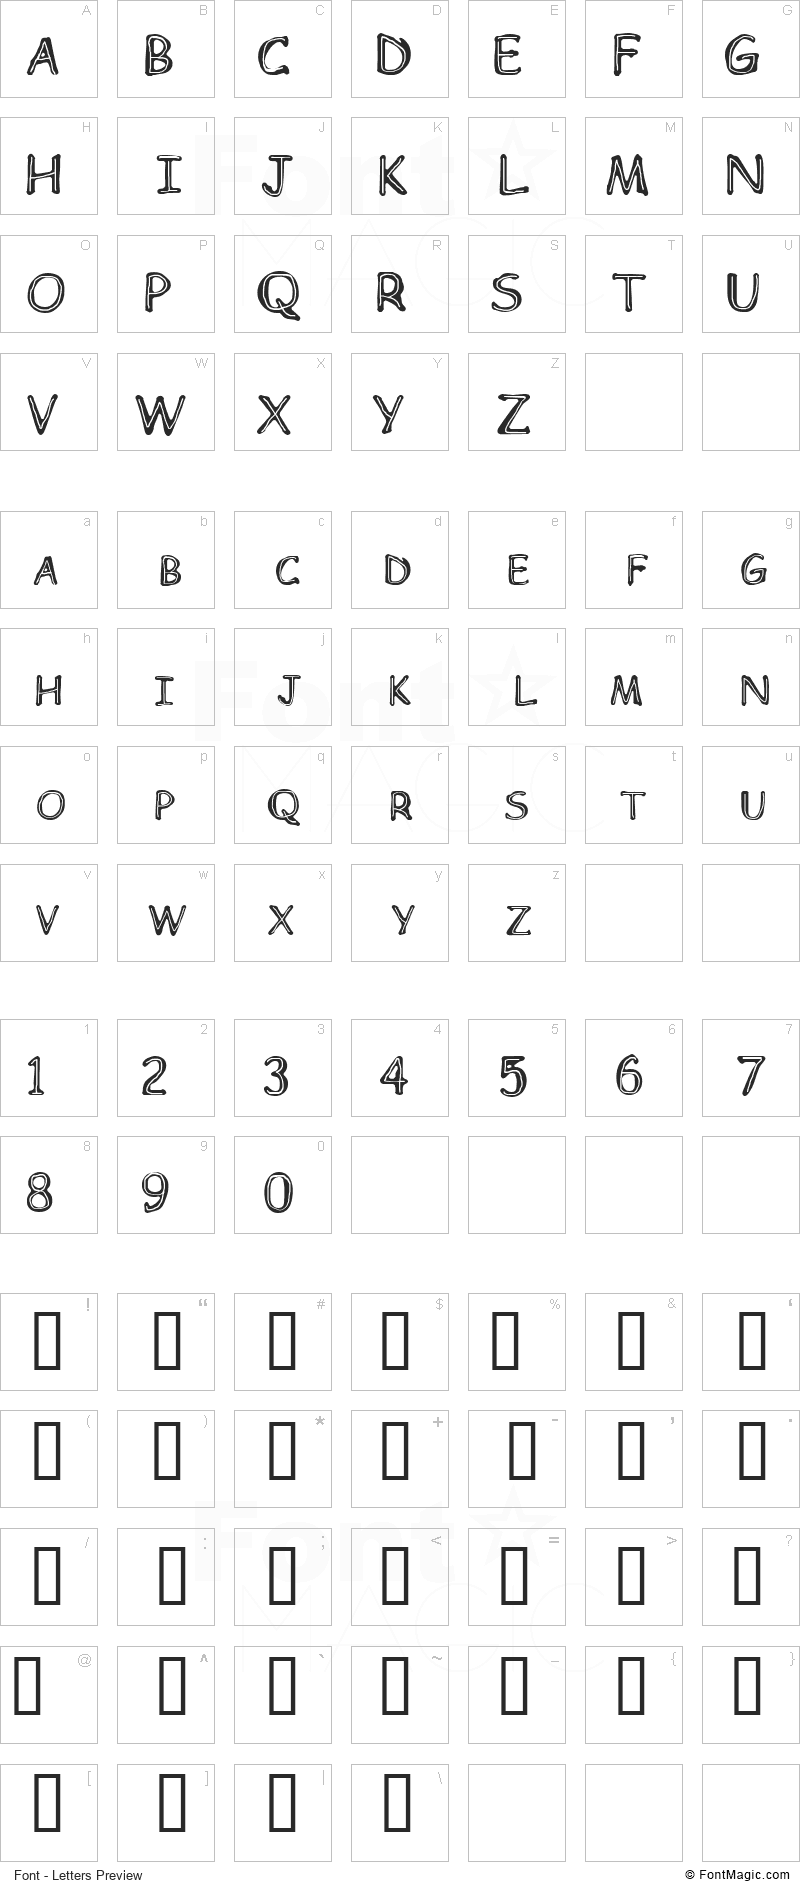 Children Font - All Latters Preview Chart